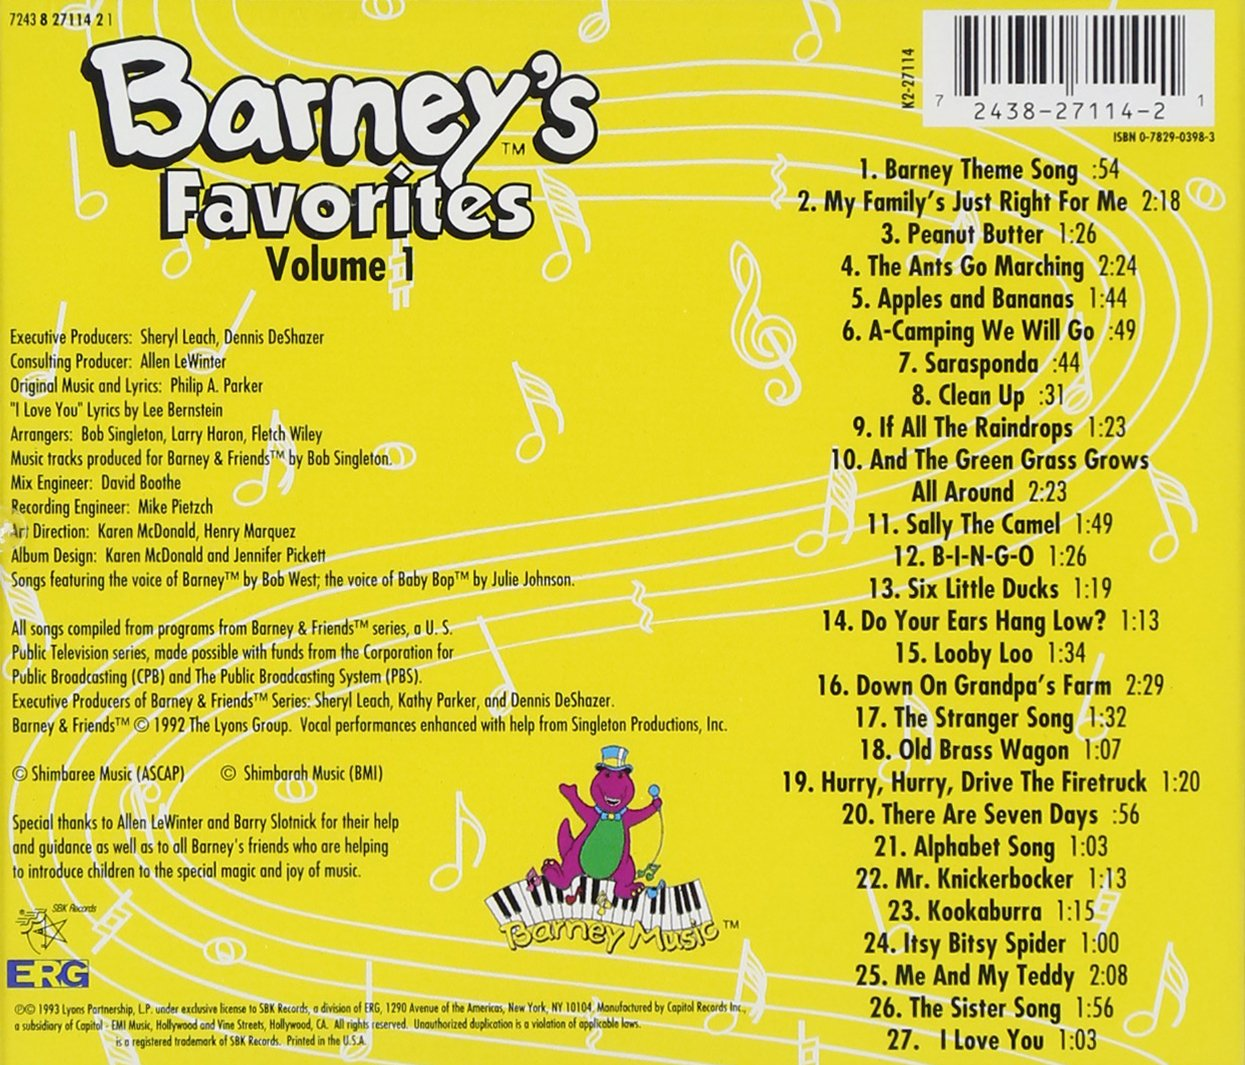 peanut butter and jelly song barney